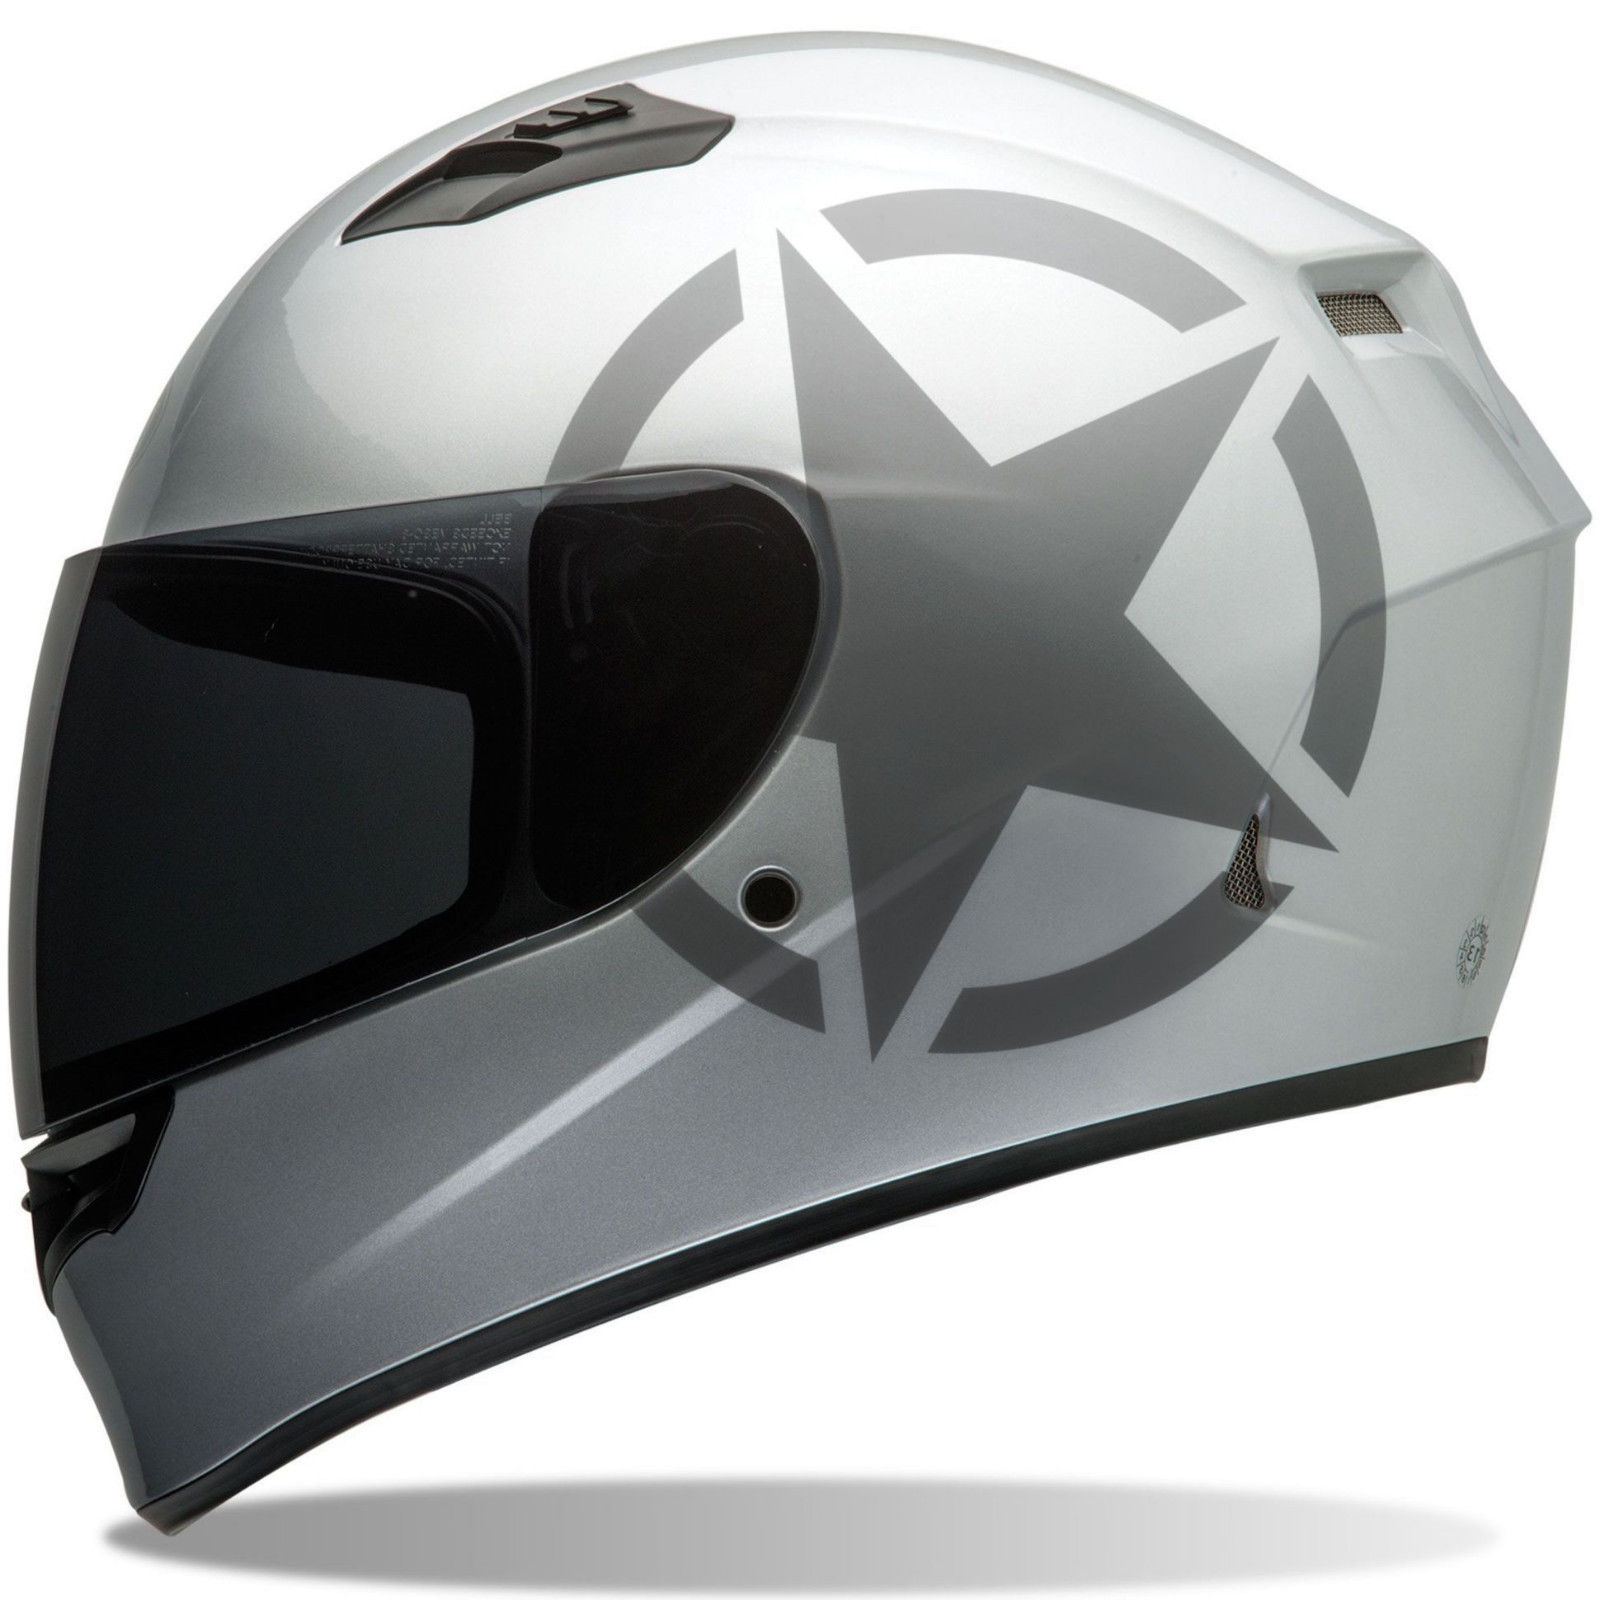 Motorcycle Helmet Stickers And Decals India